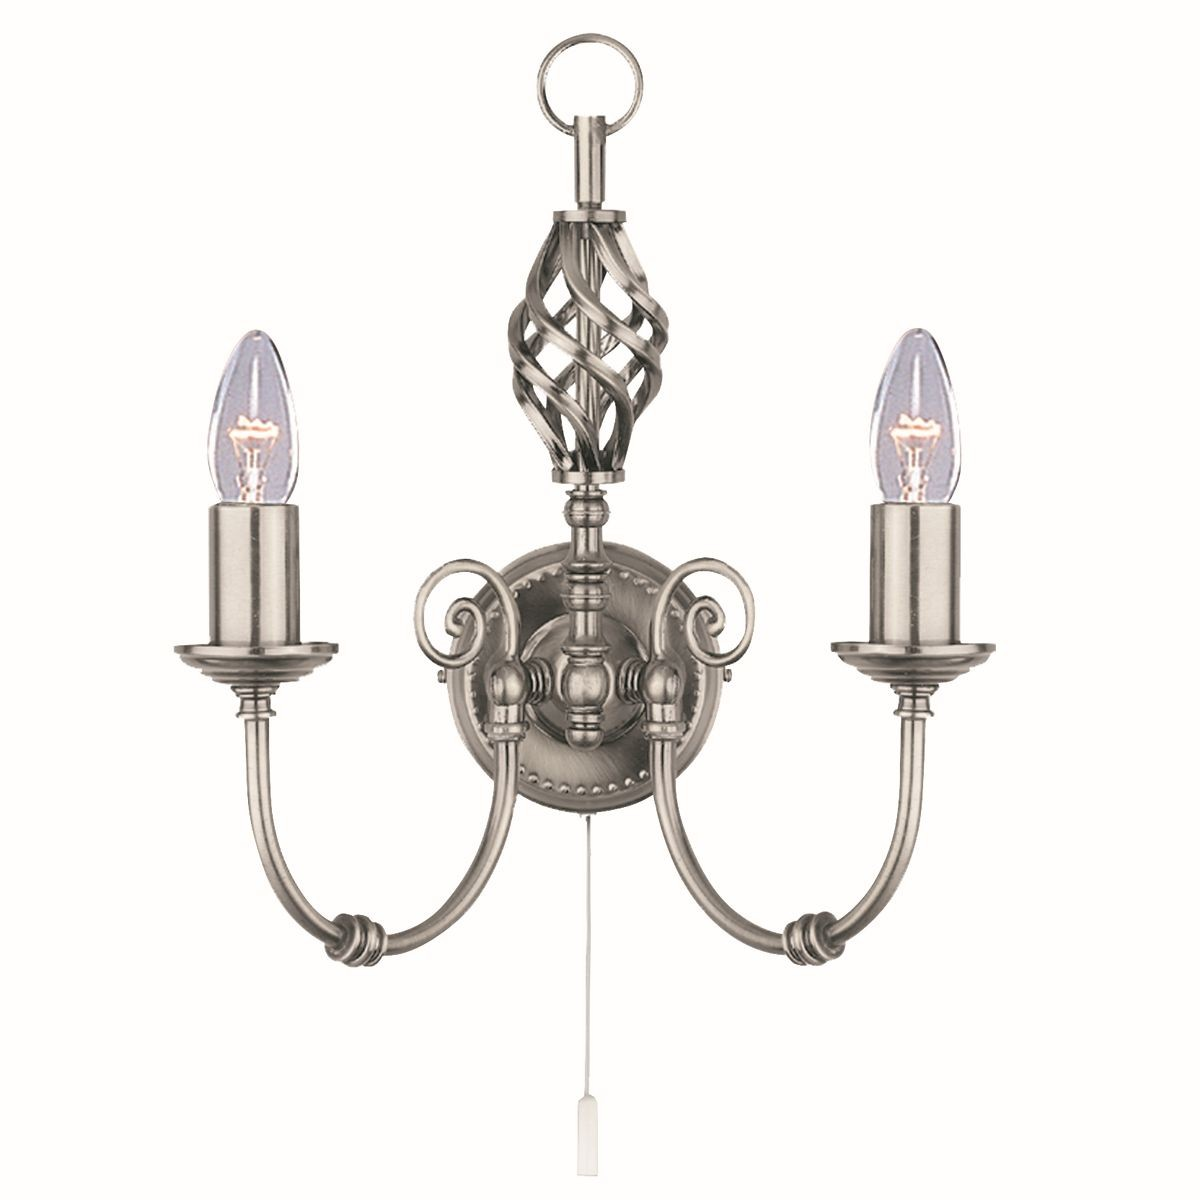 Dark Silver Wall Lights : Zanzibar Wall Light - satin silver 2 light